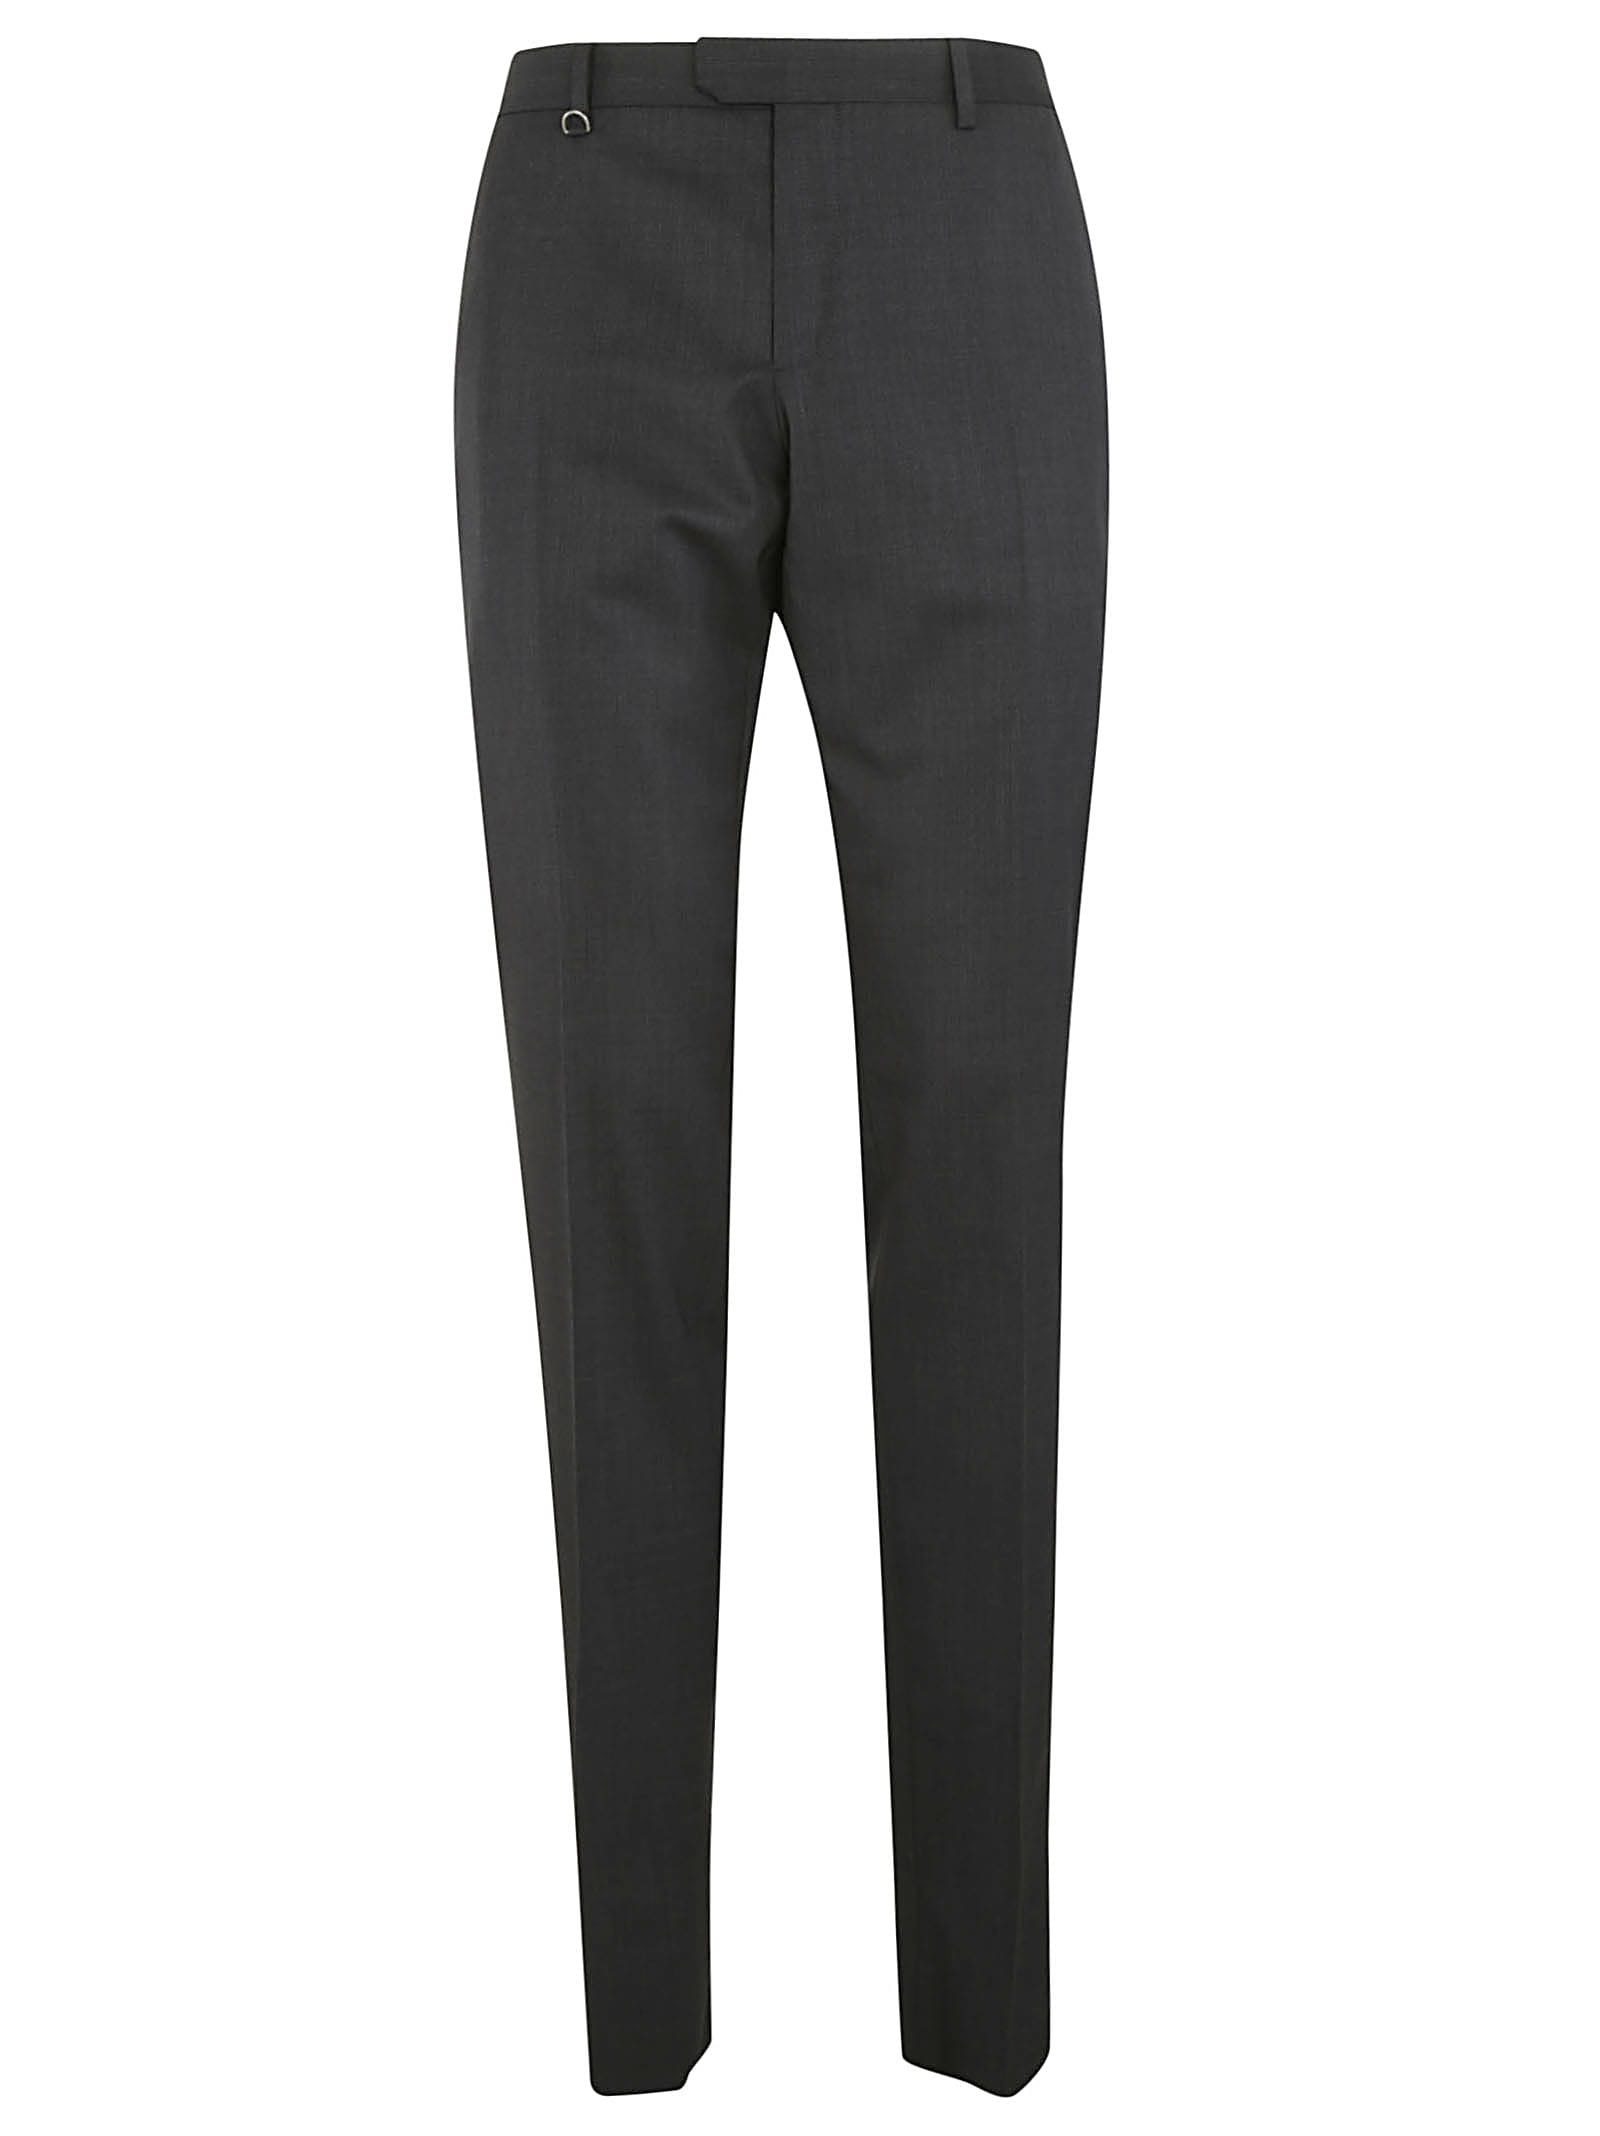 Z Zegna Classic Straight Trousers